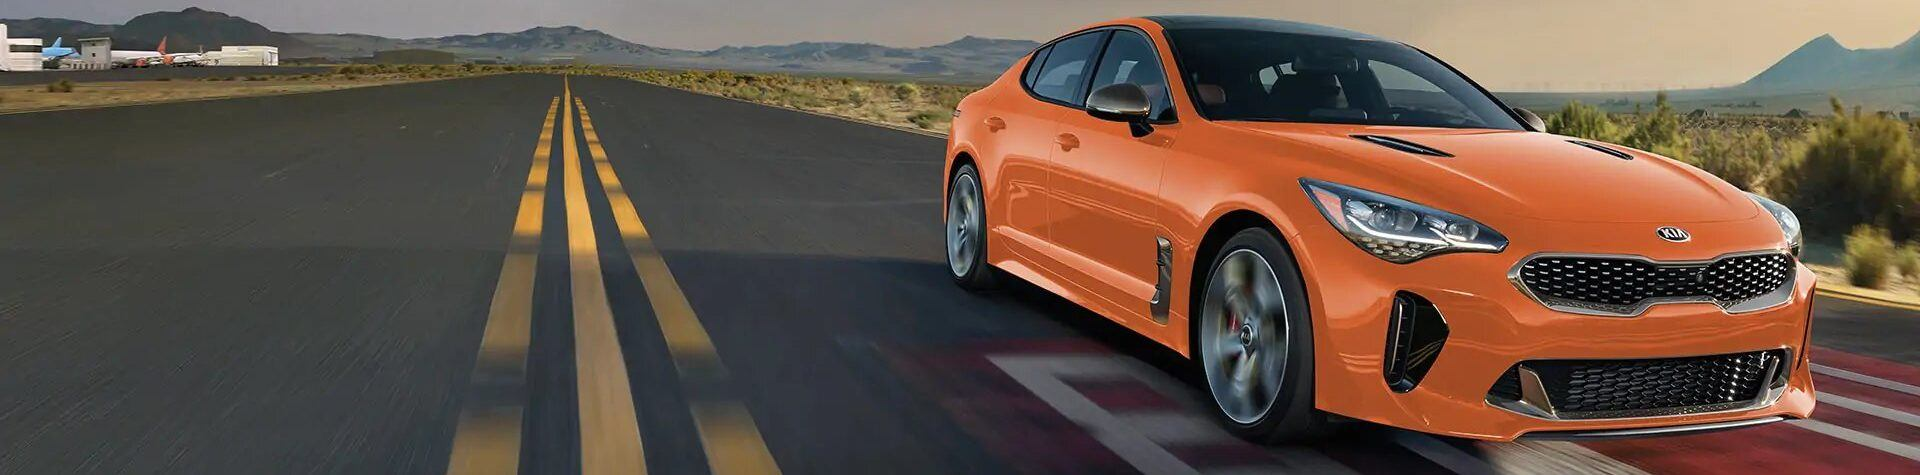 Front side view of a Kia Stinger in orange driving on a country highway